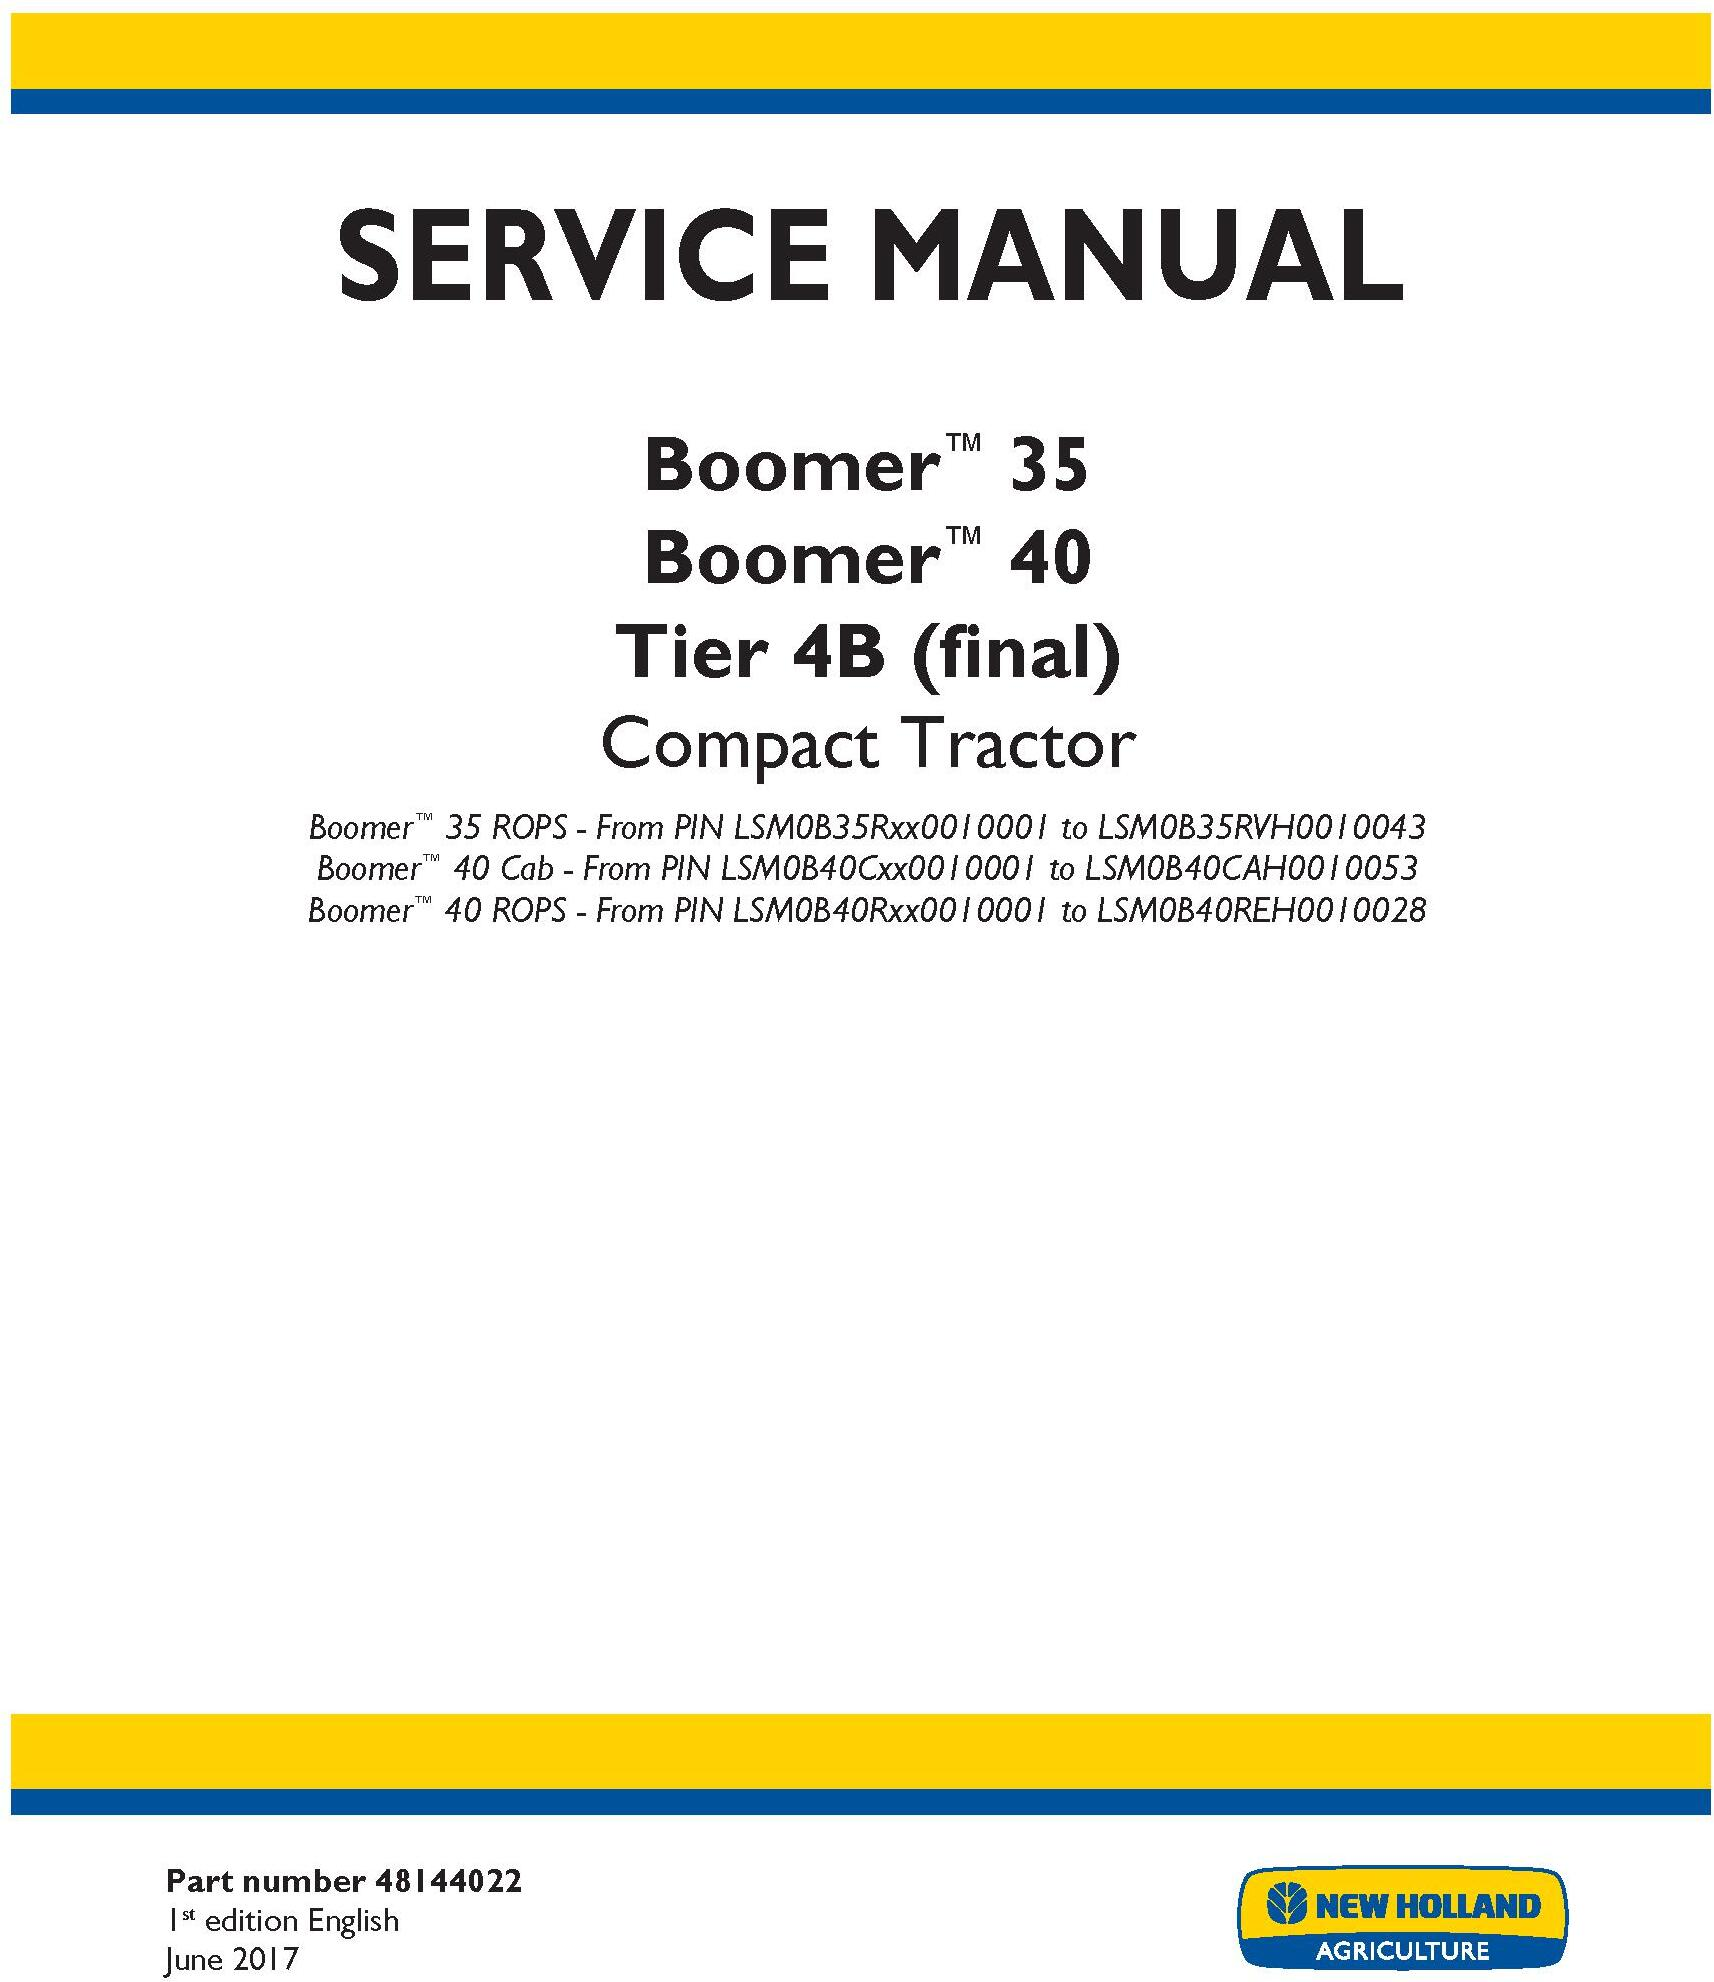 New Holland Boomer 35, Boomer 40 Tier 4B (final) Compact Tractor Service Manual (North America) - 19499